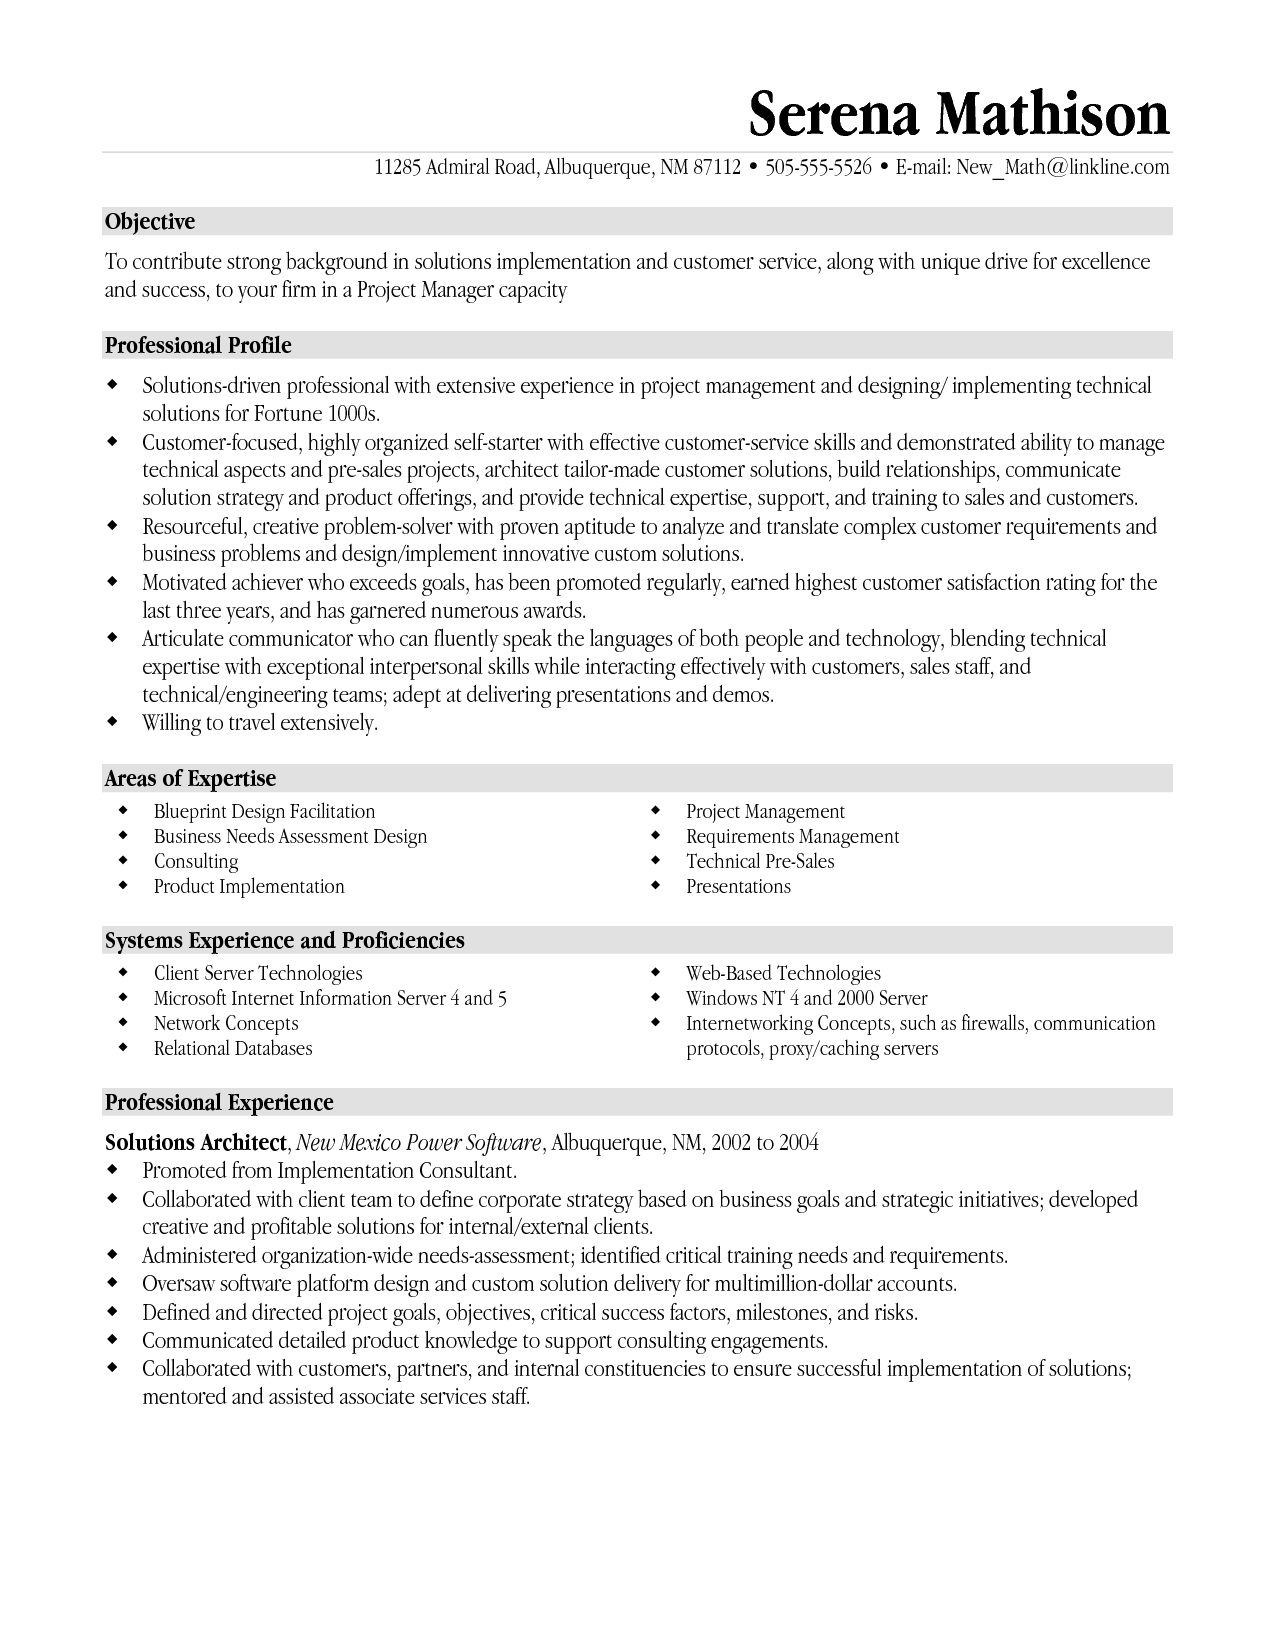 Management Resume Examples Fascinating Resume Templates Project Manager  Project Management Resume